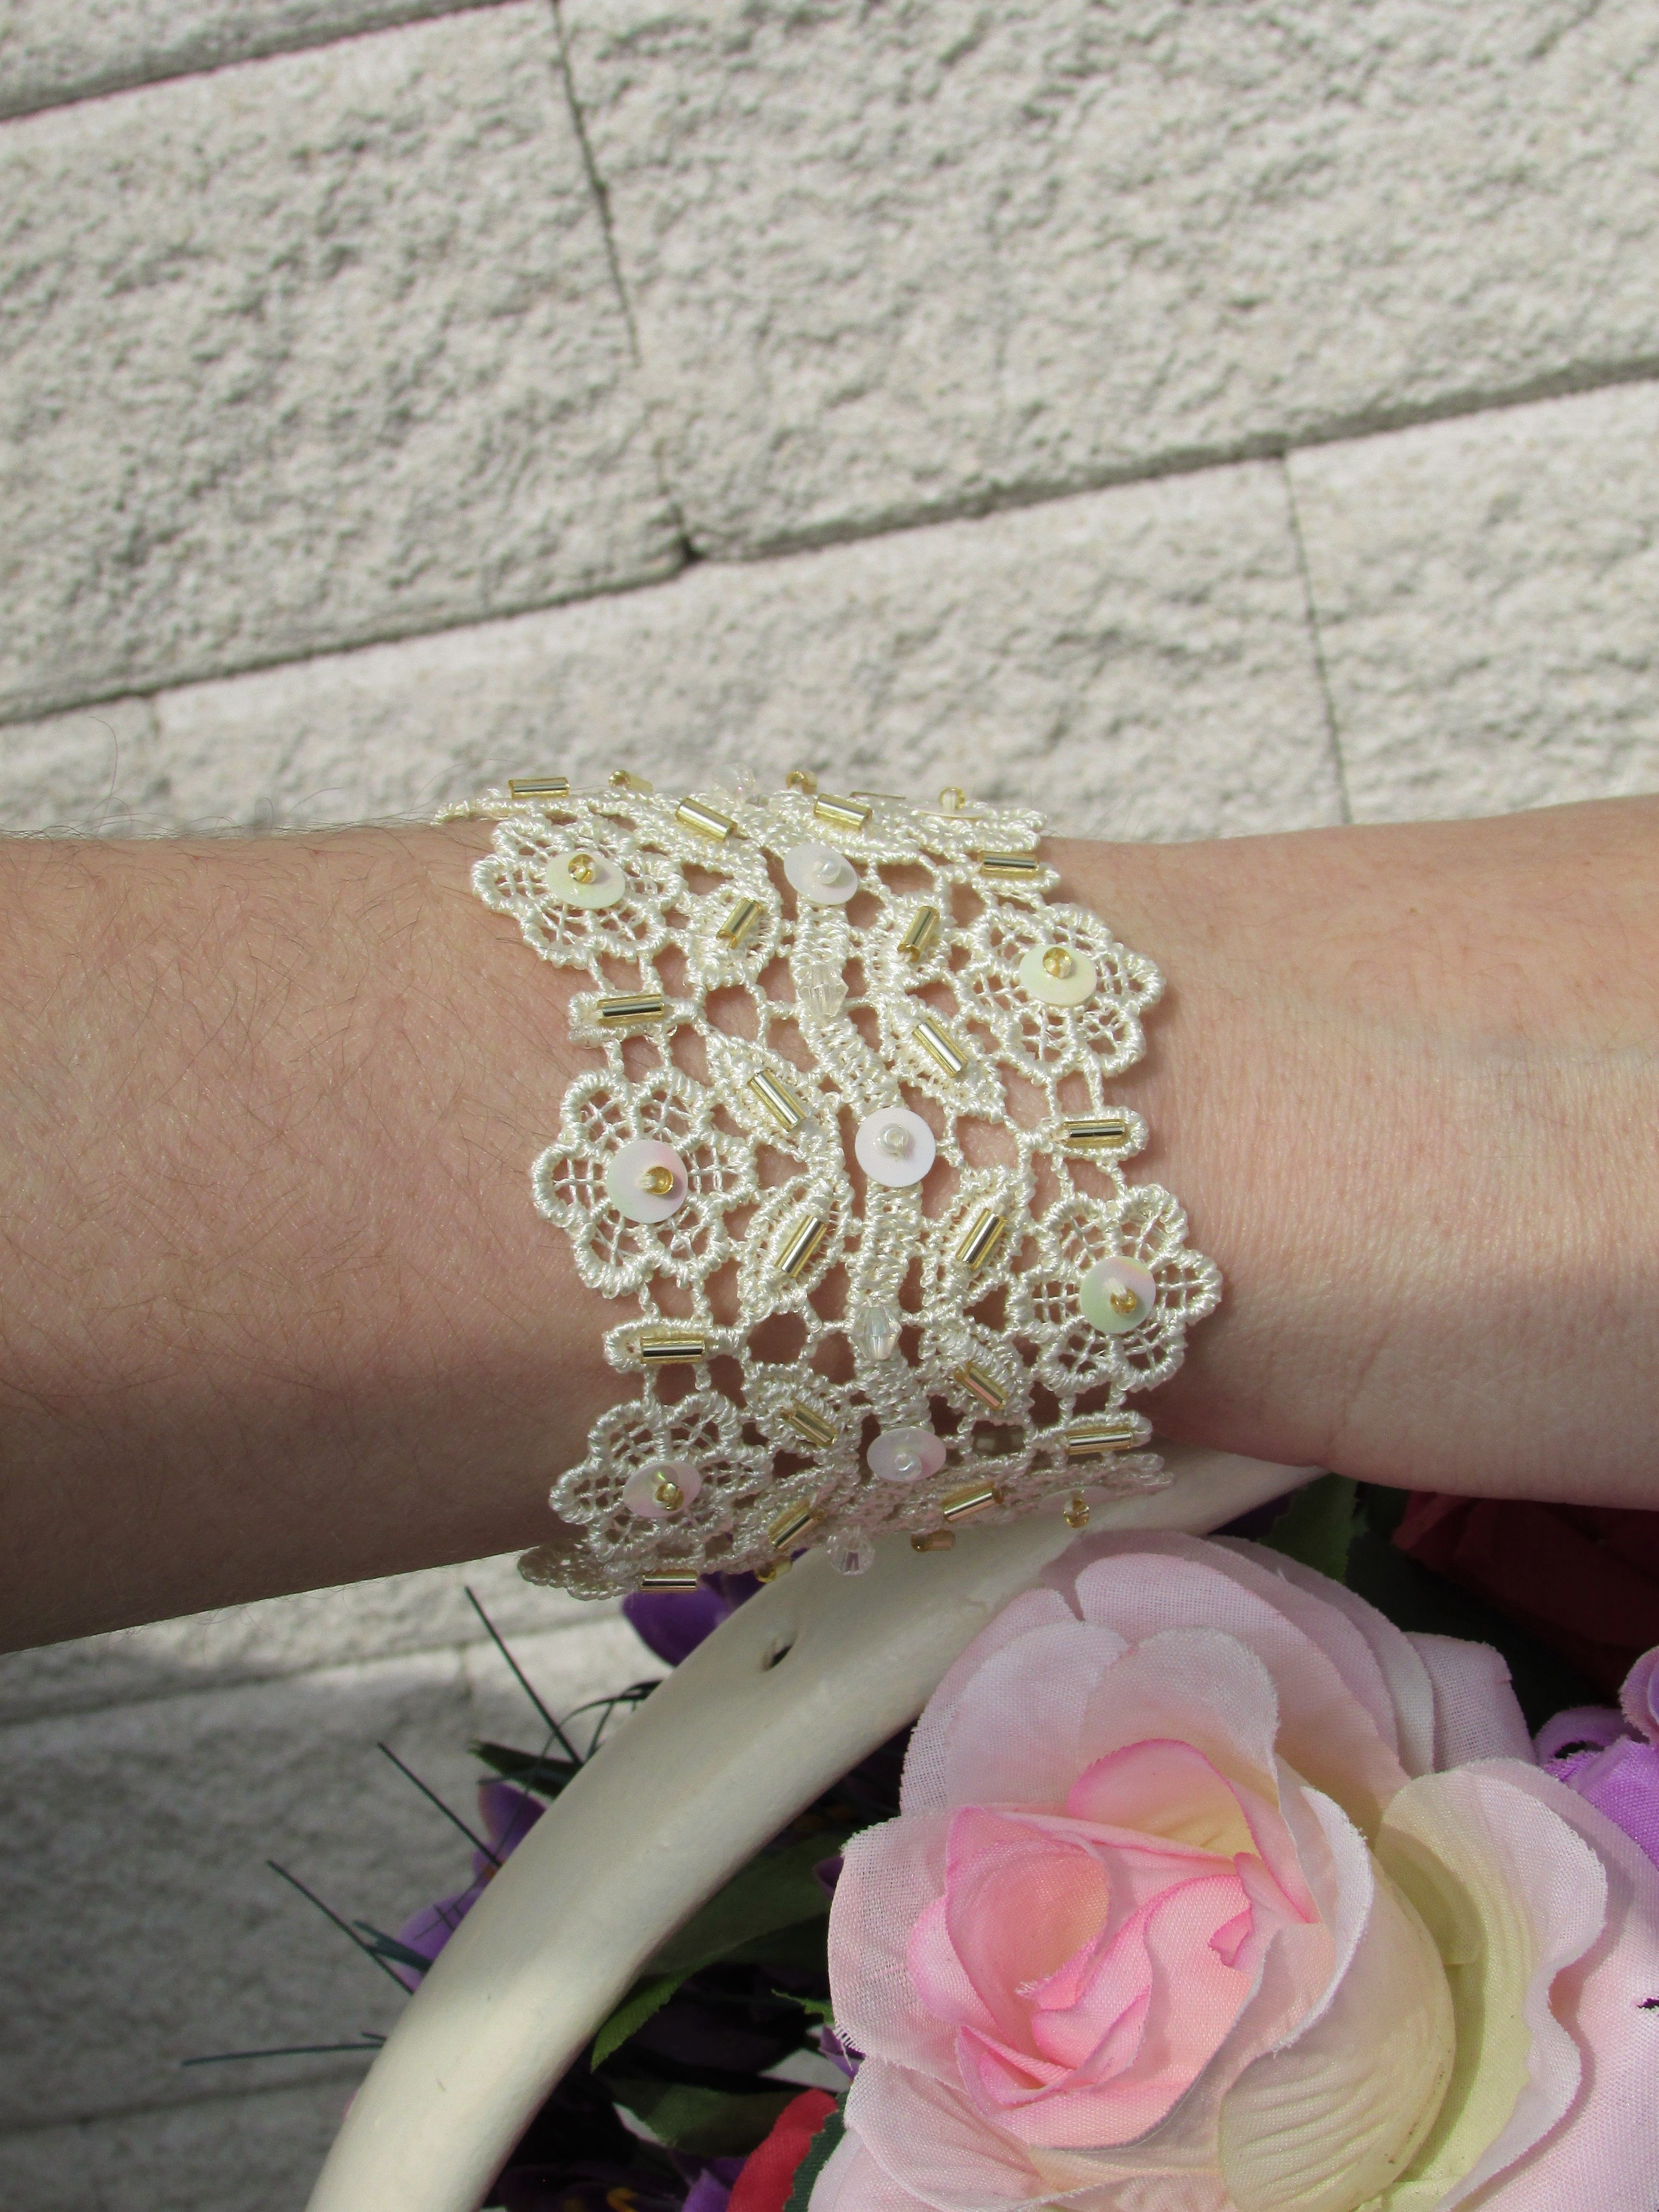 Pin by nevelynka nasha on bracelets by nevelynka nasha